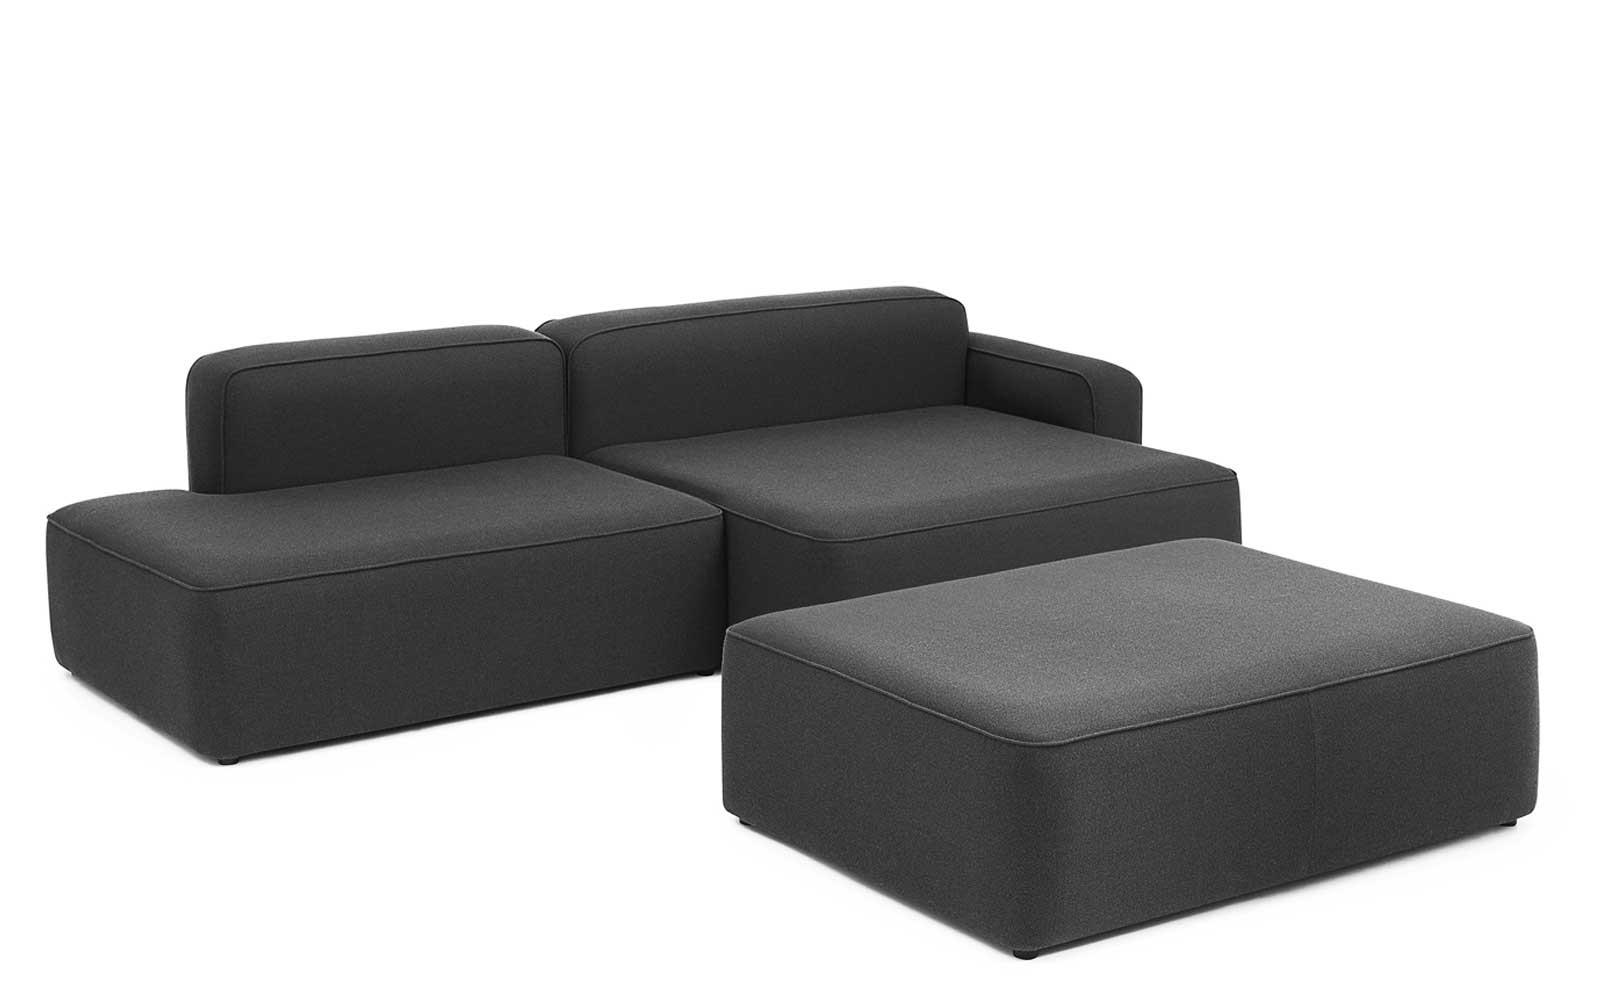 Rope Sofa Chaise Lounge Right With Pouf2